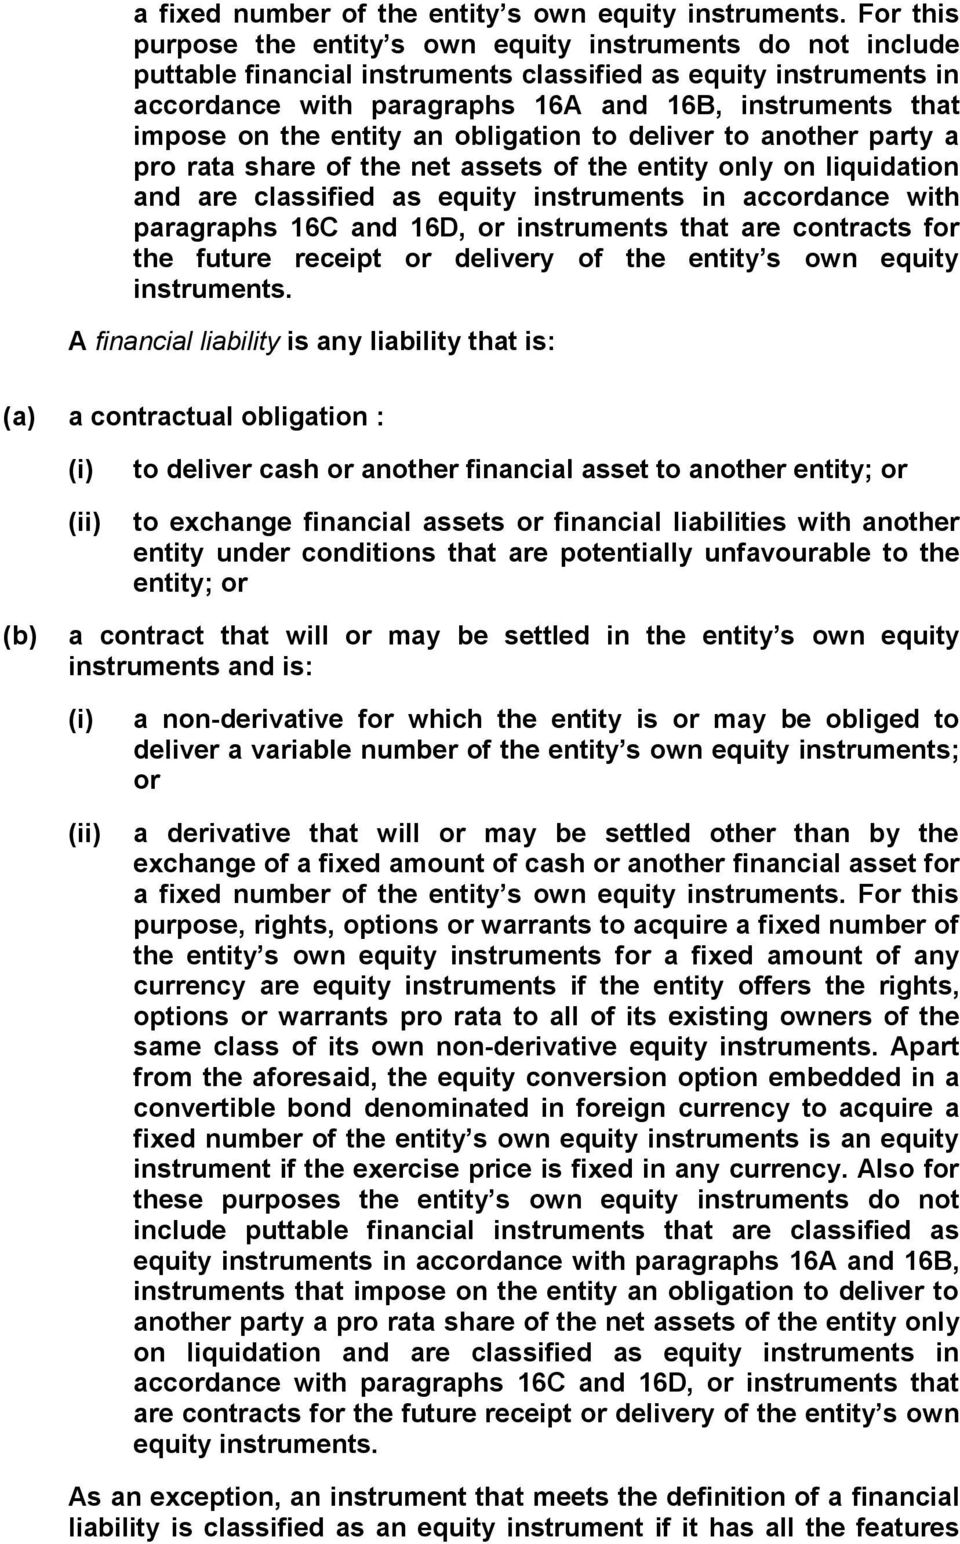 on the entity an obligation to deliver to another party a pro rata share of the net assets of the entity only on liquidation and are classified as equity instruments in accordance with paragraphs 16C